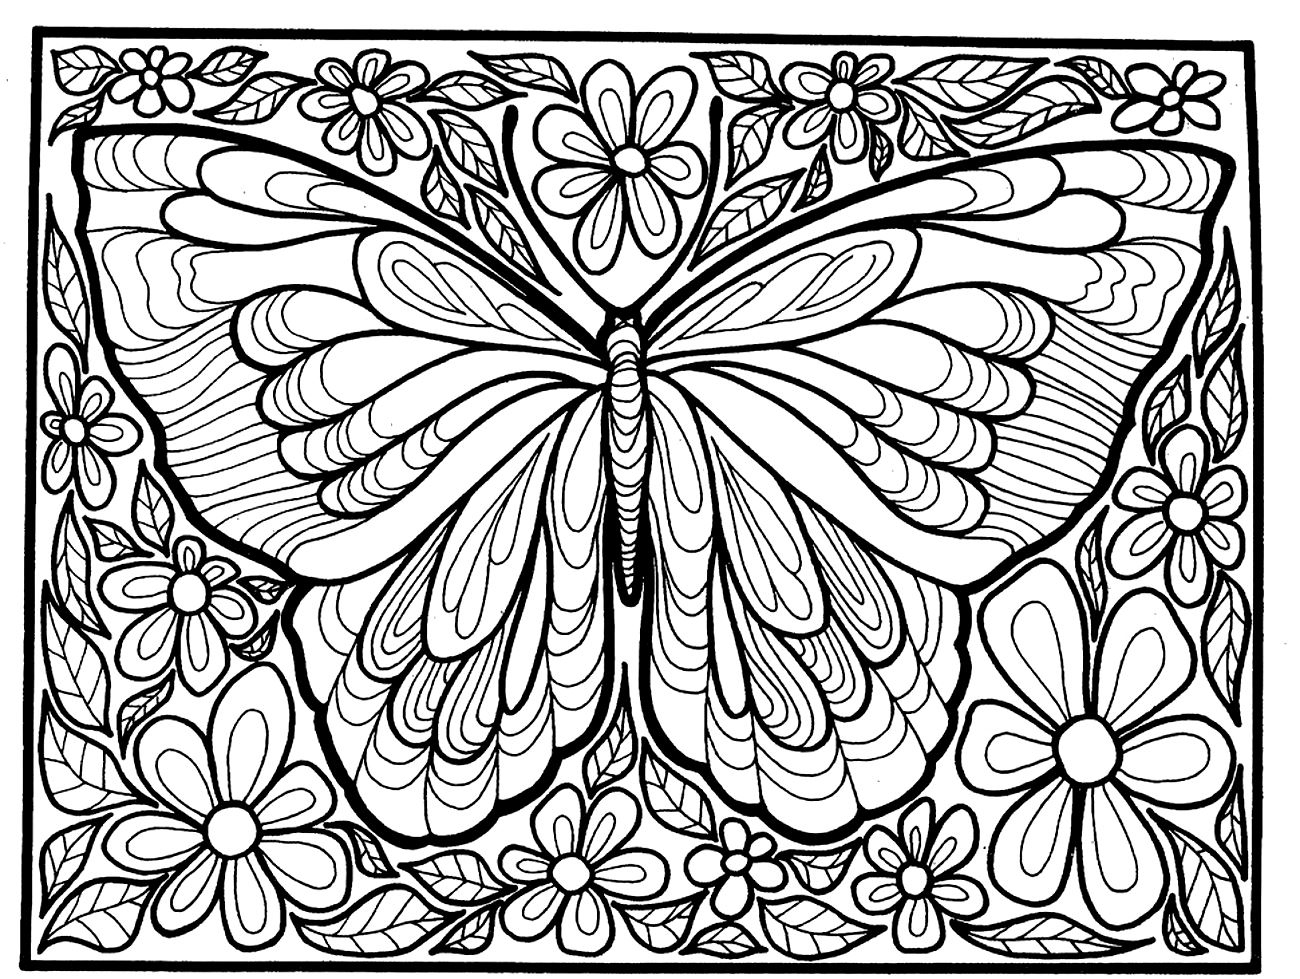 insect coloring pages please - photo#47